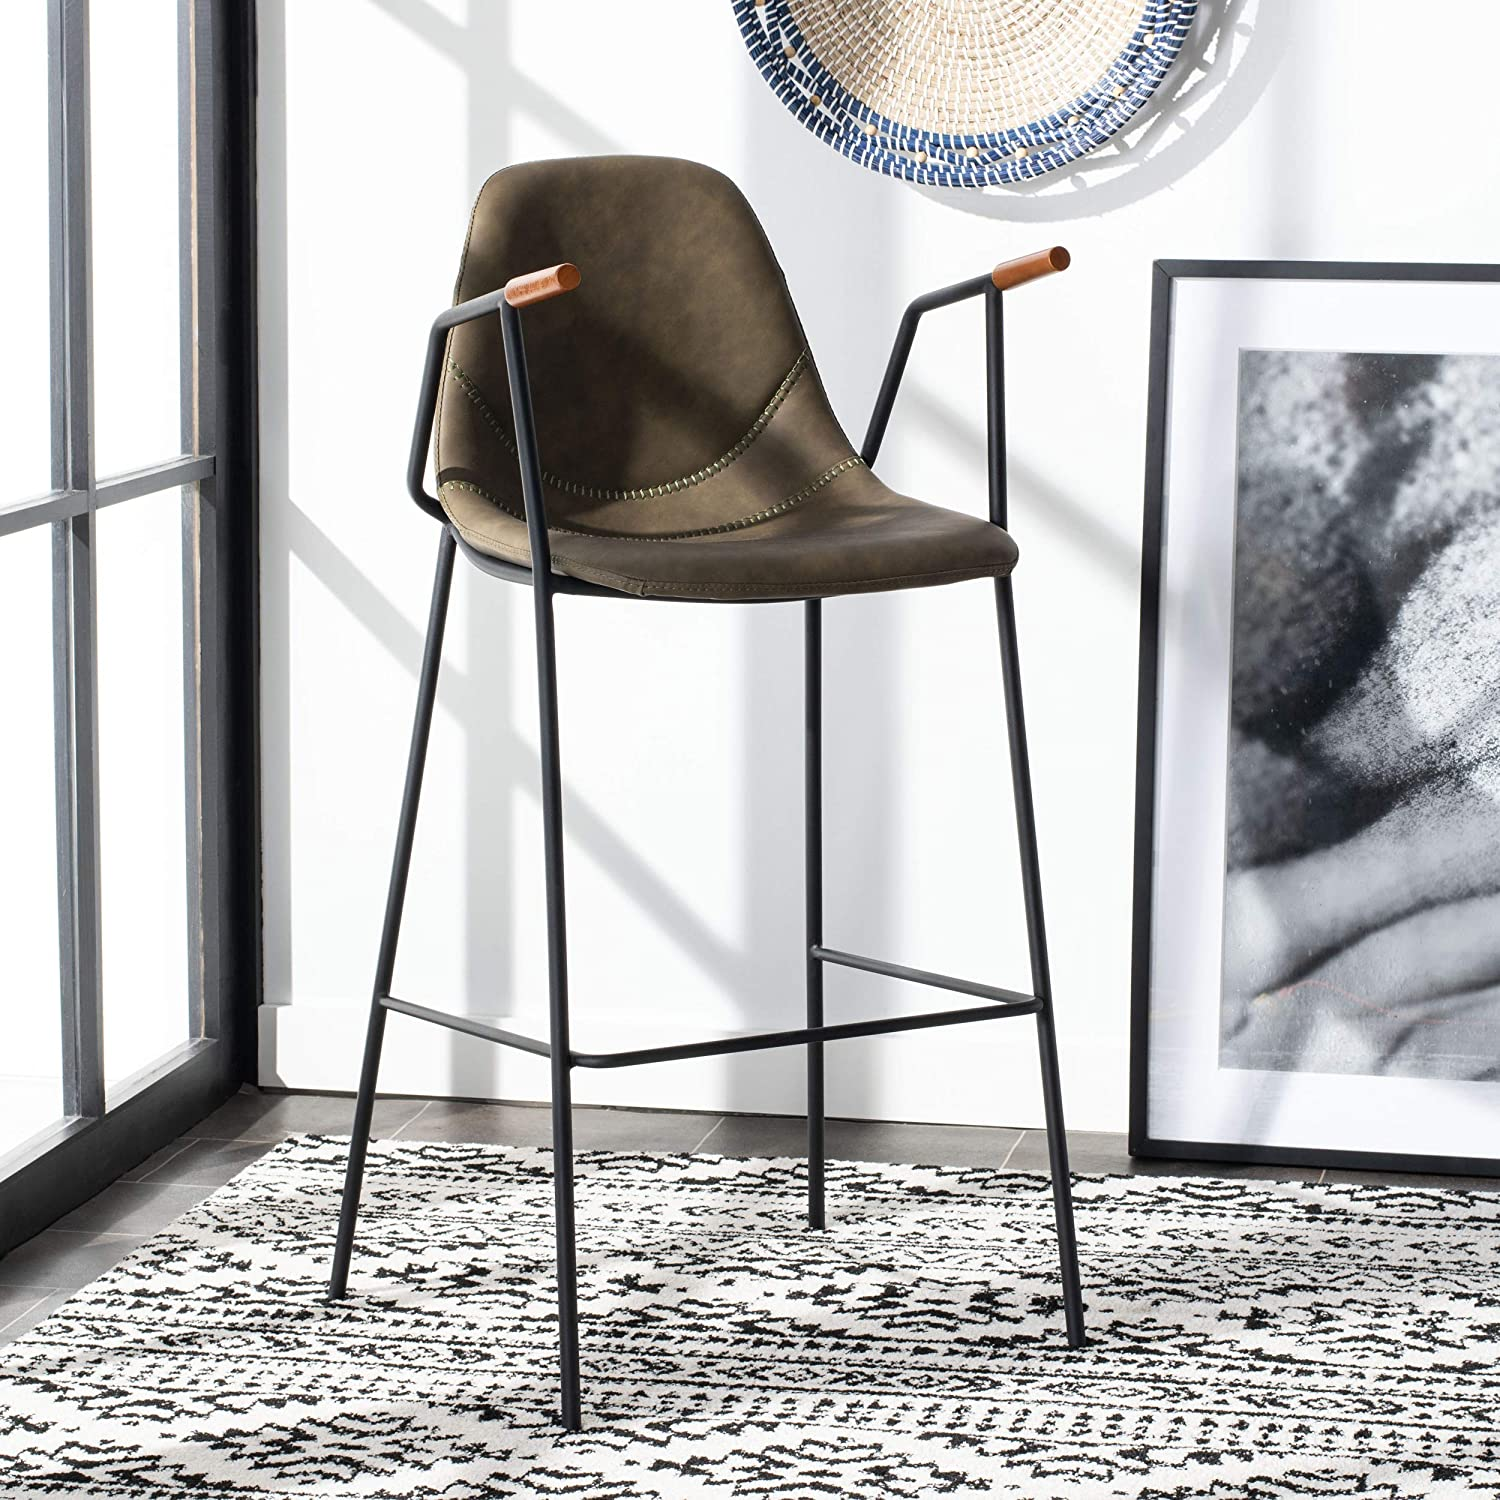 Safavieh Home Collection Tanner Mid-Century Olive Bar Stool